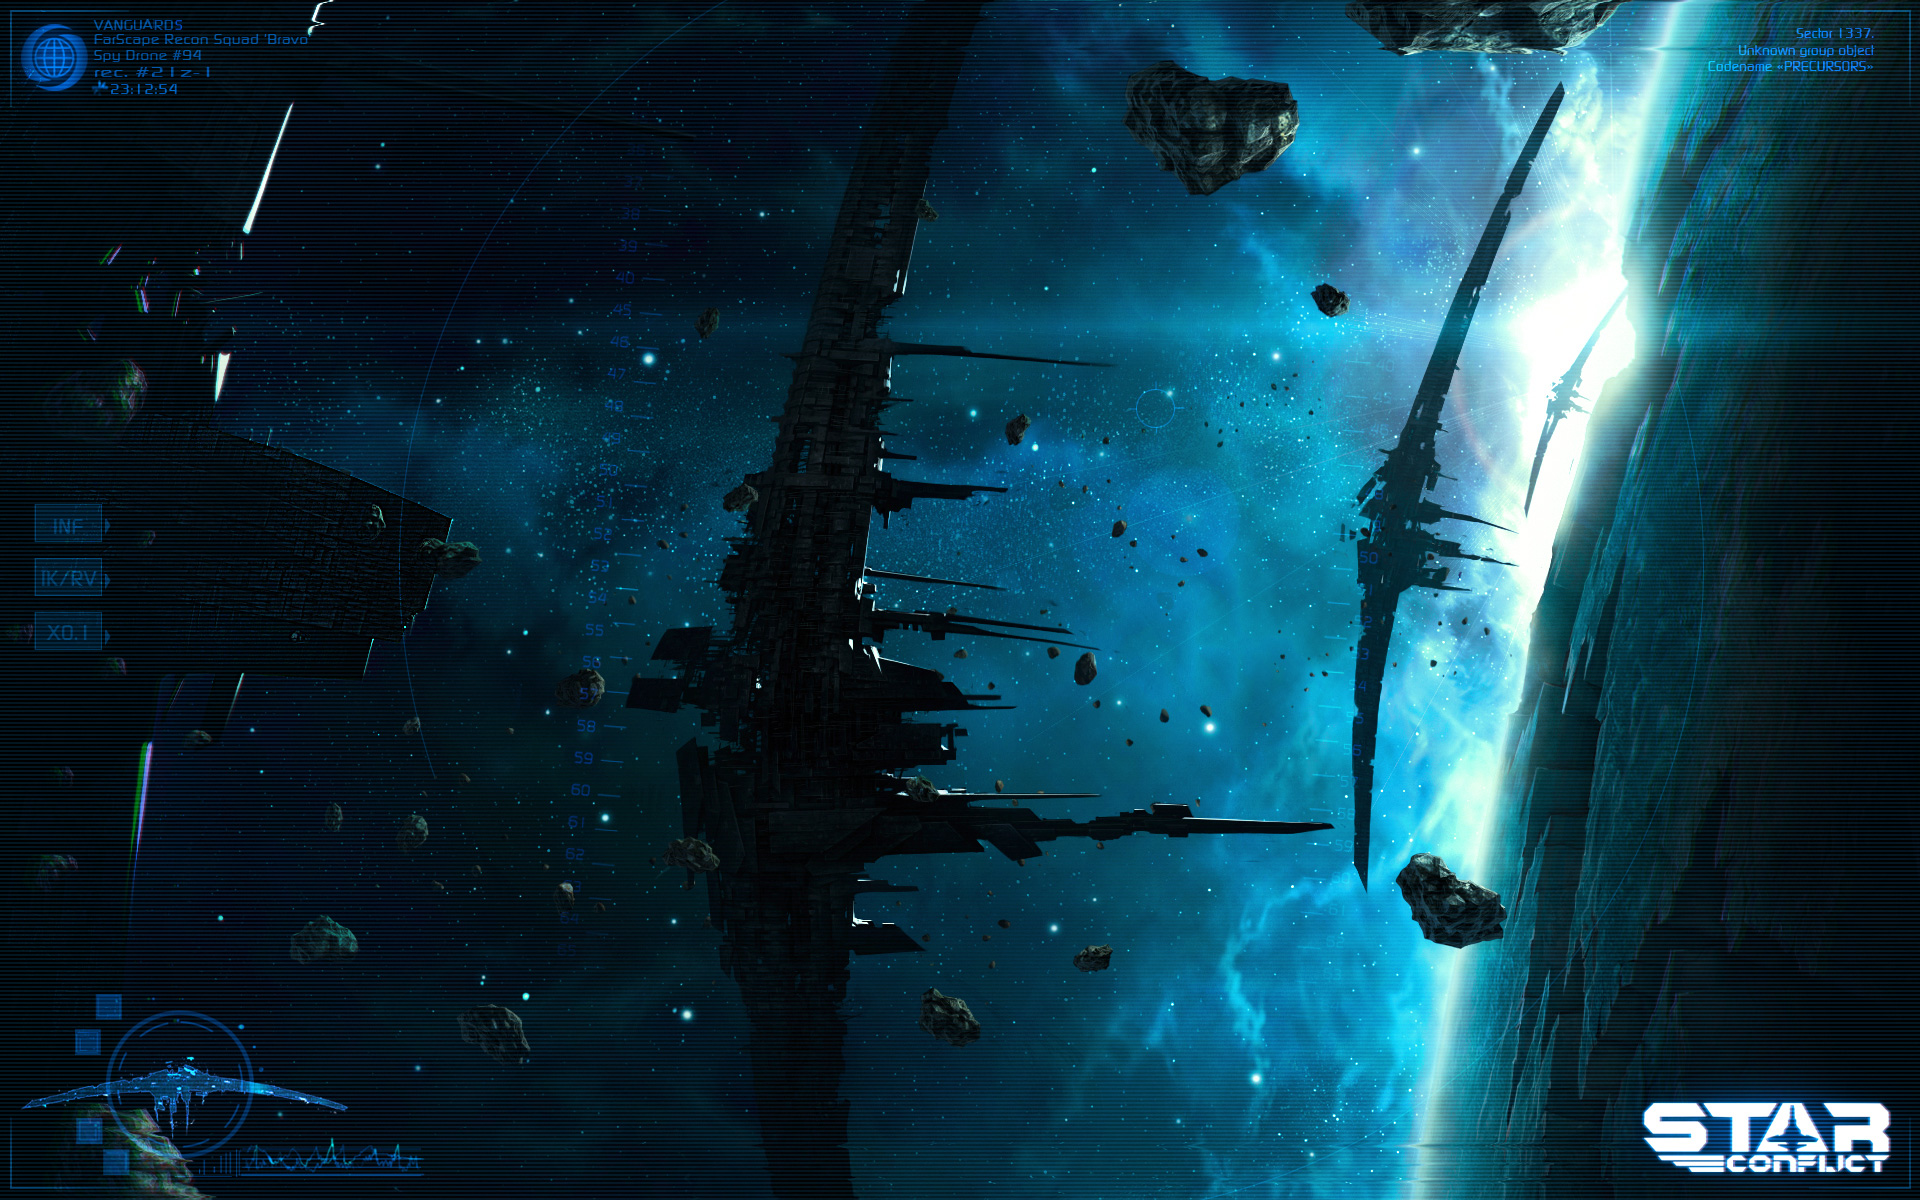 Free Star Conflict Wallpaper in 1920x1200